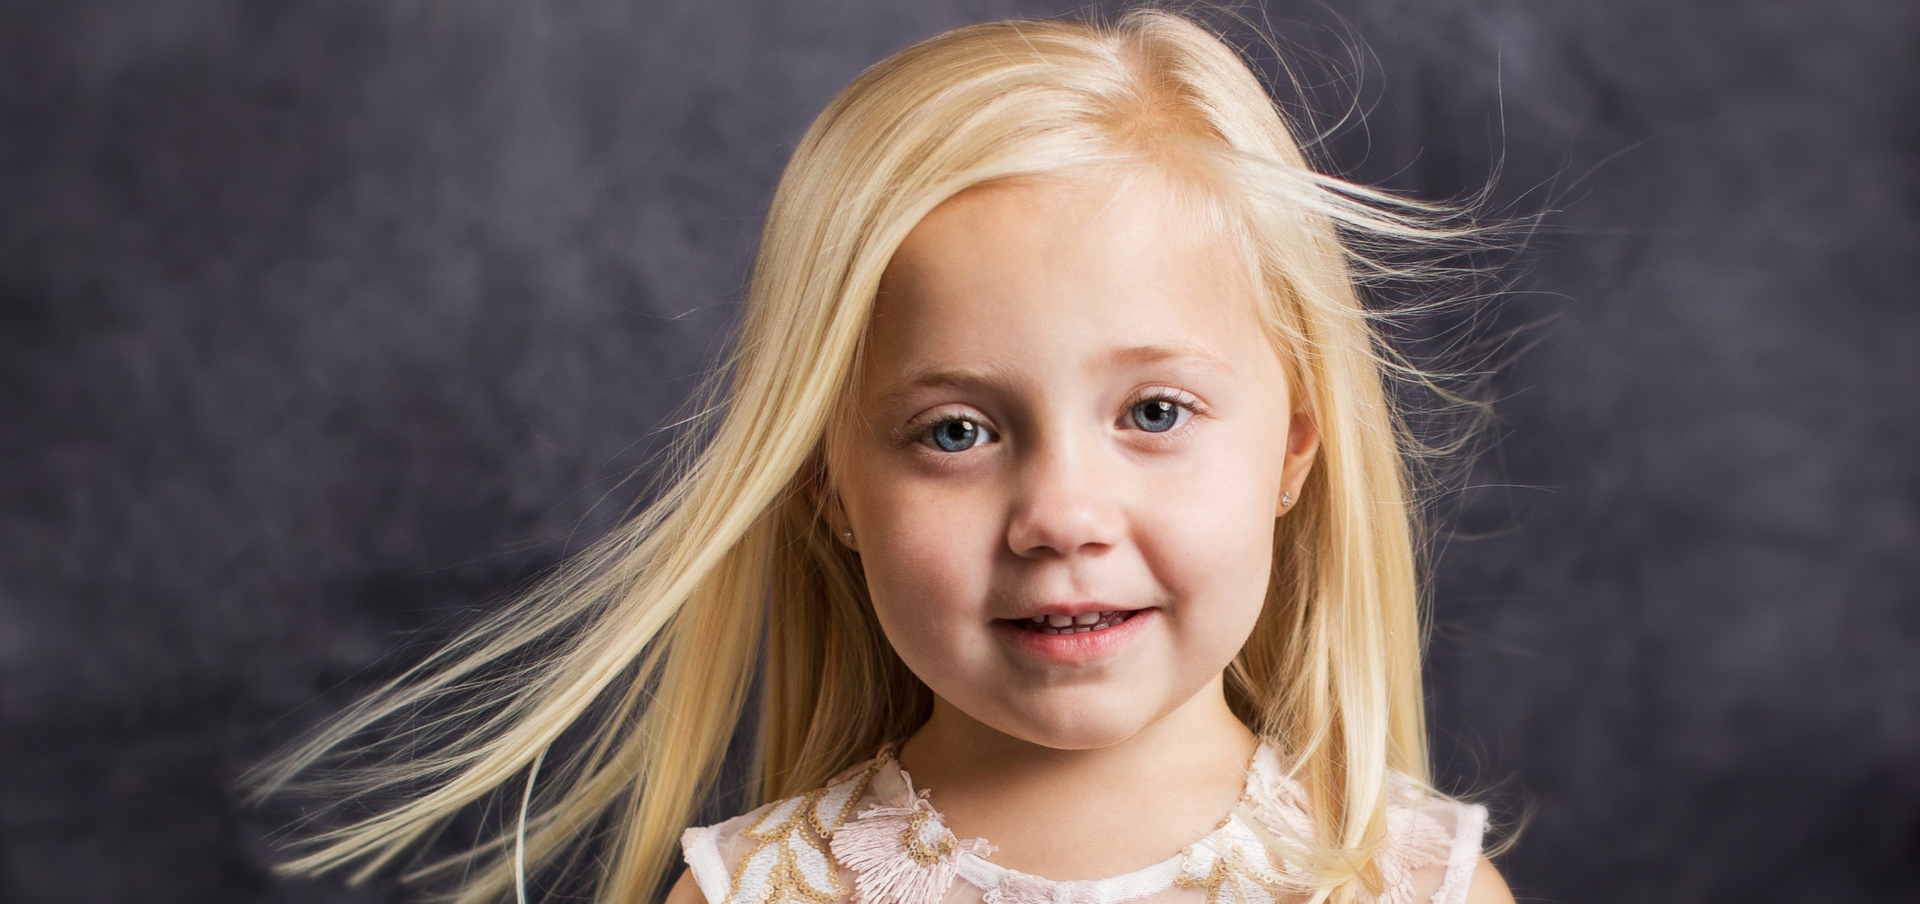 KIDS - Creative portraits to capture your kids personality